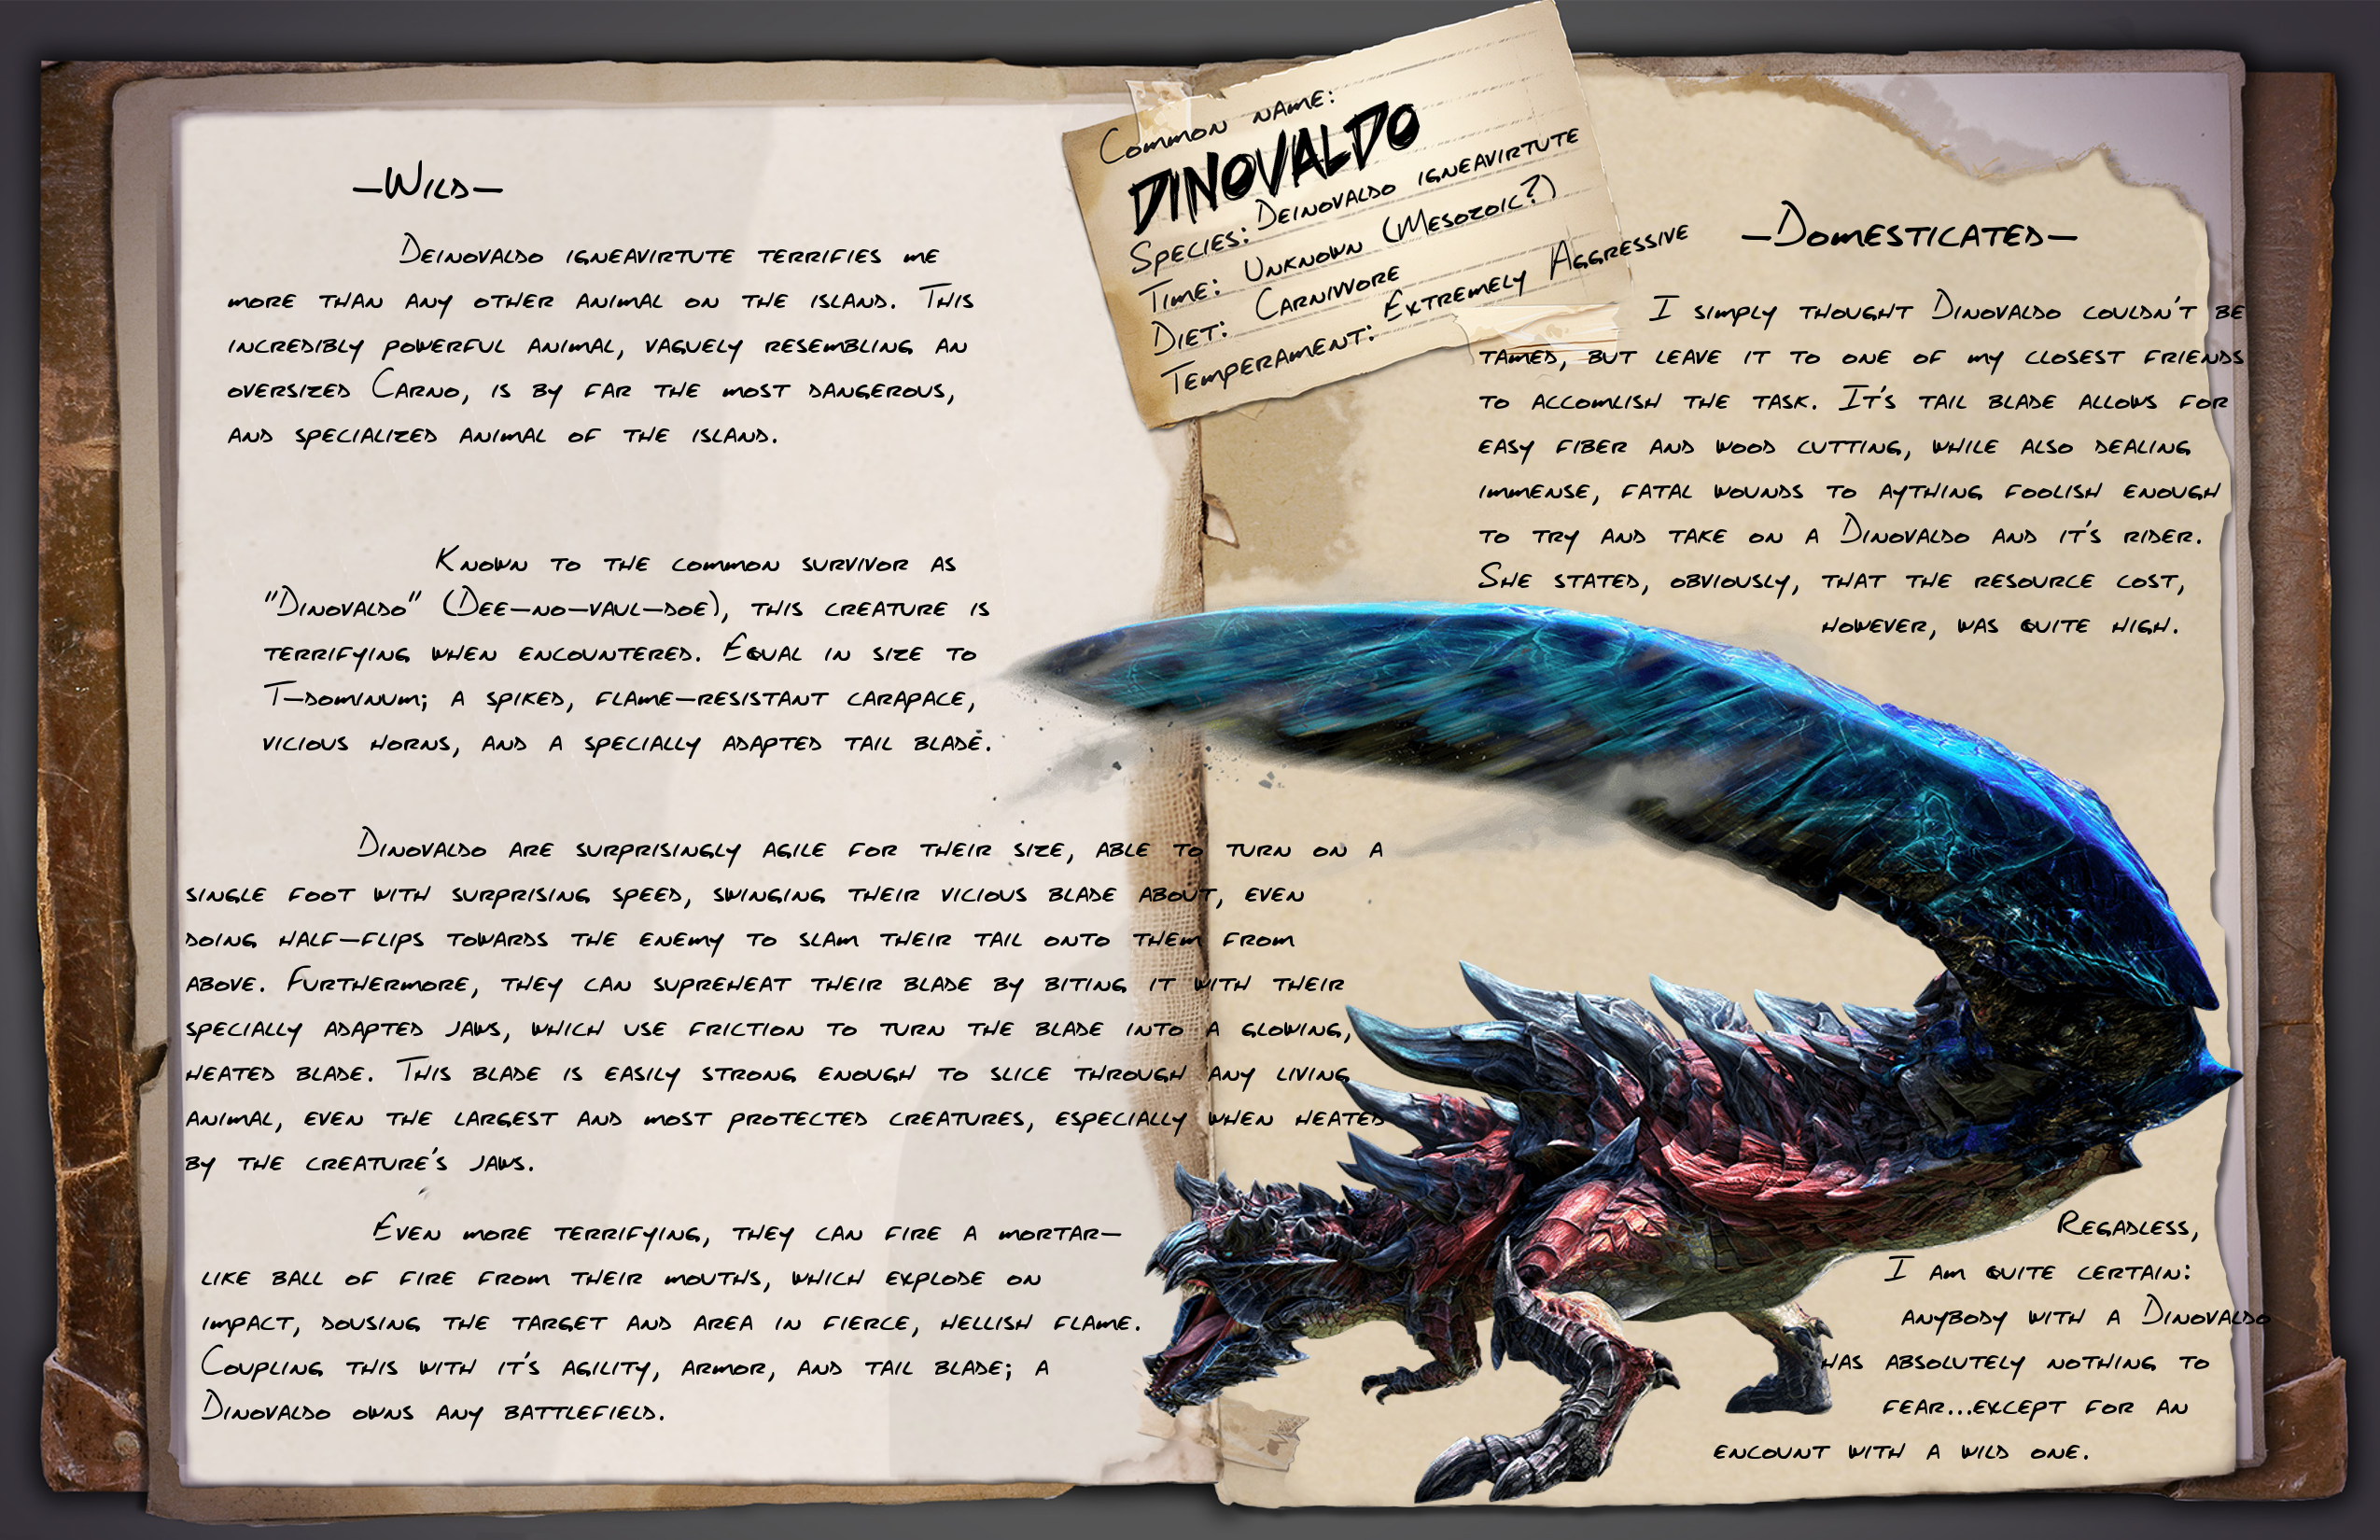 Community Crunch 37 and ARK Digest 27 Q&A! - ARK News - ARK